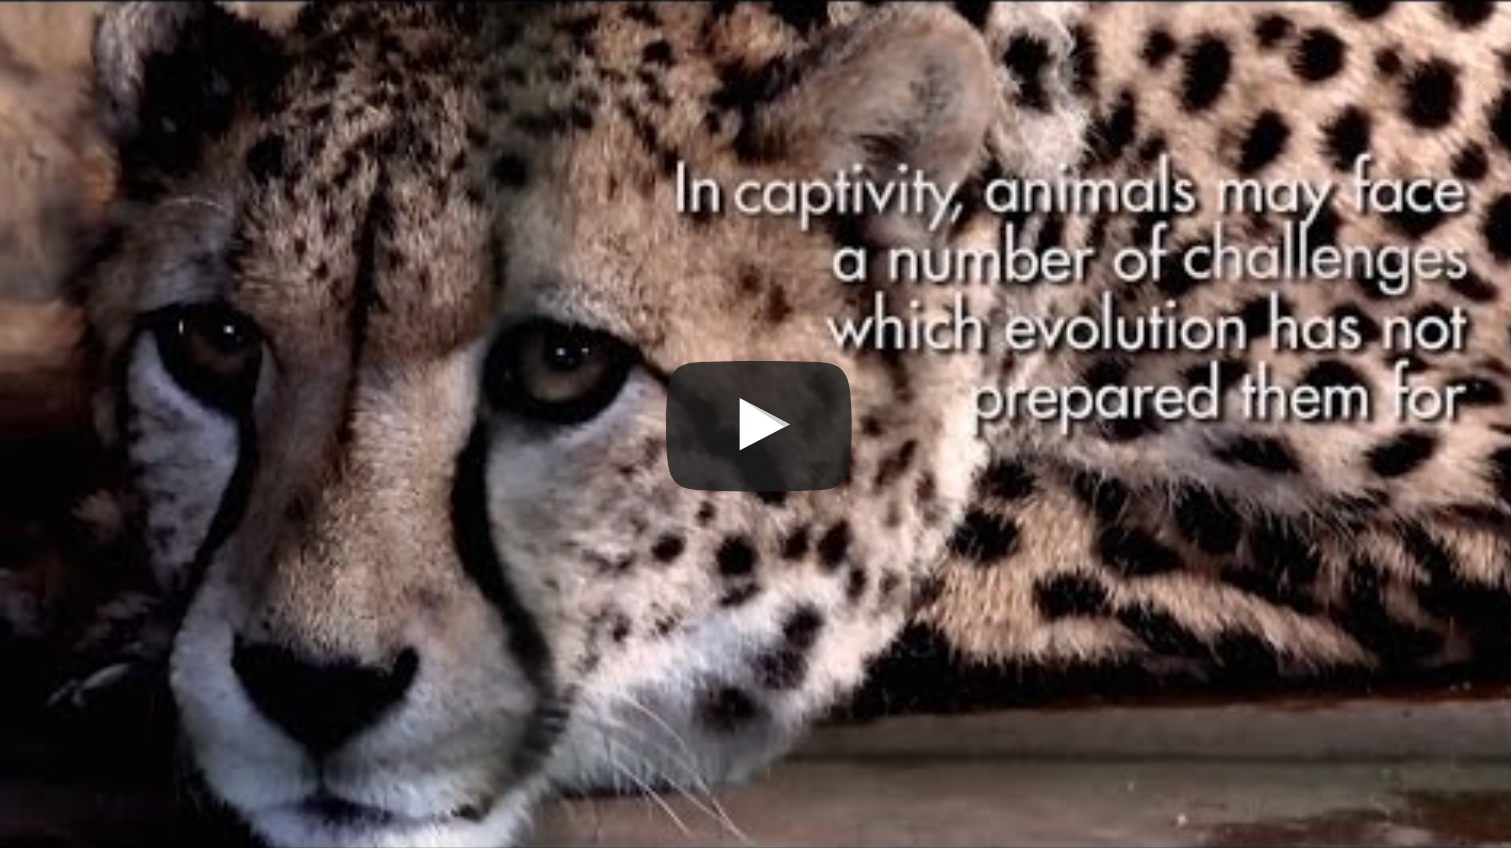 Zoochosis - The living conditions of animals in captivity | VeganFlix